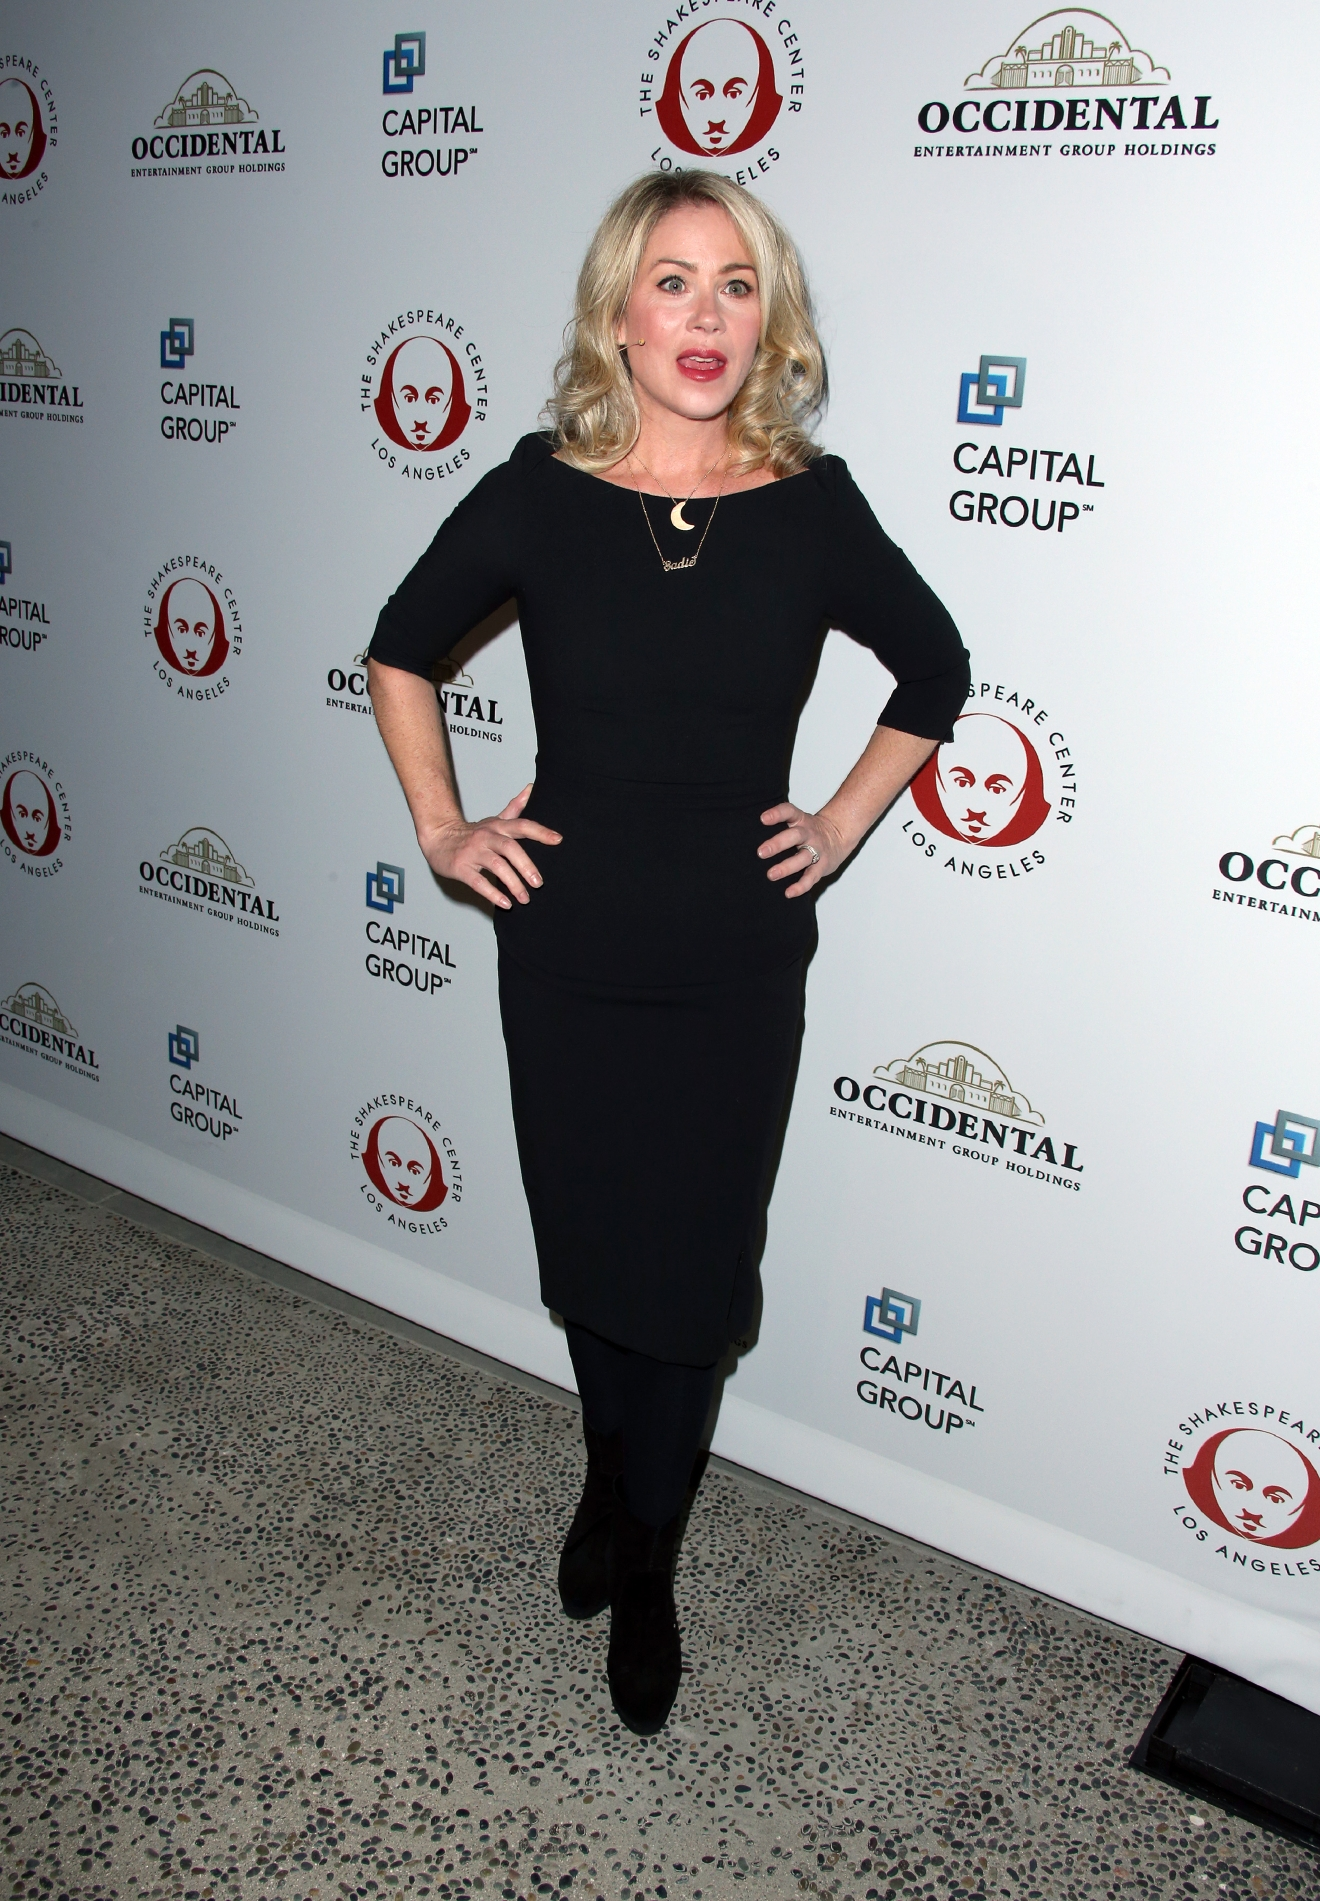 The Shakespeare Center of Los Angeles 25th Annual Simply Shakespeare Benefit at The Broad Stage - Arrivals  Featuring: Christina Applegate Where: Santa Monica, California, United States When: 08 Dec 2015 Credit: FayesVision/WENN.com